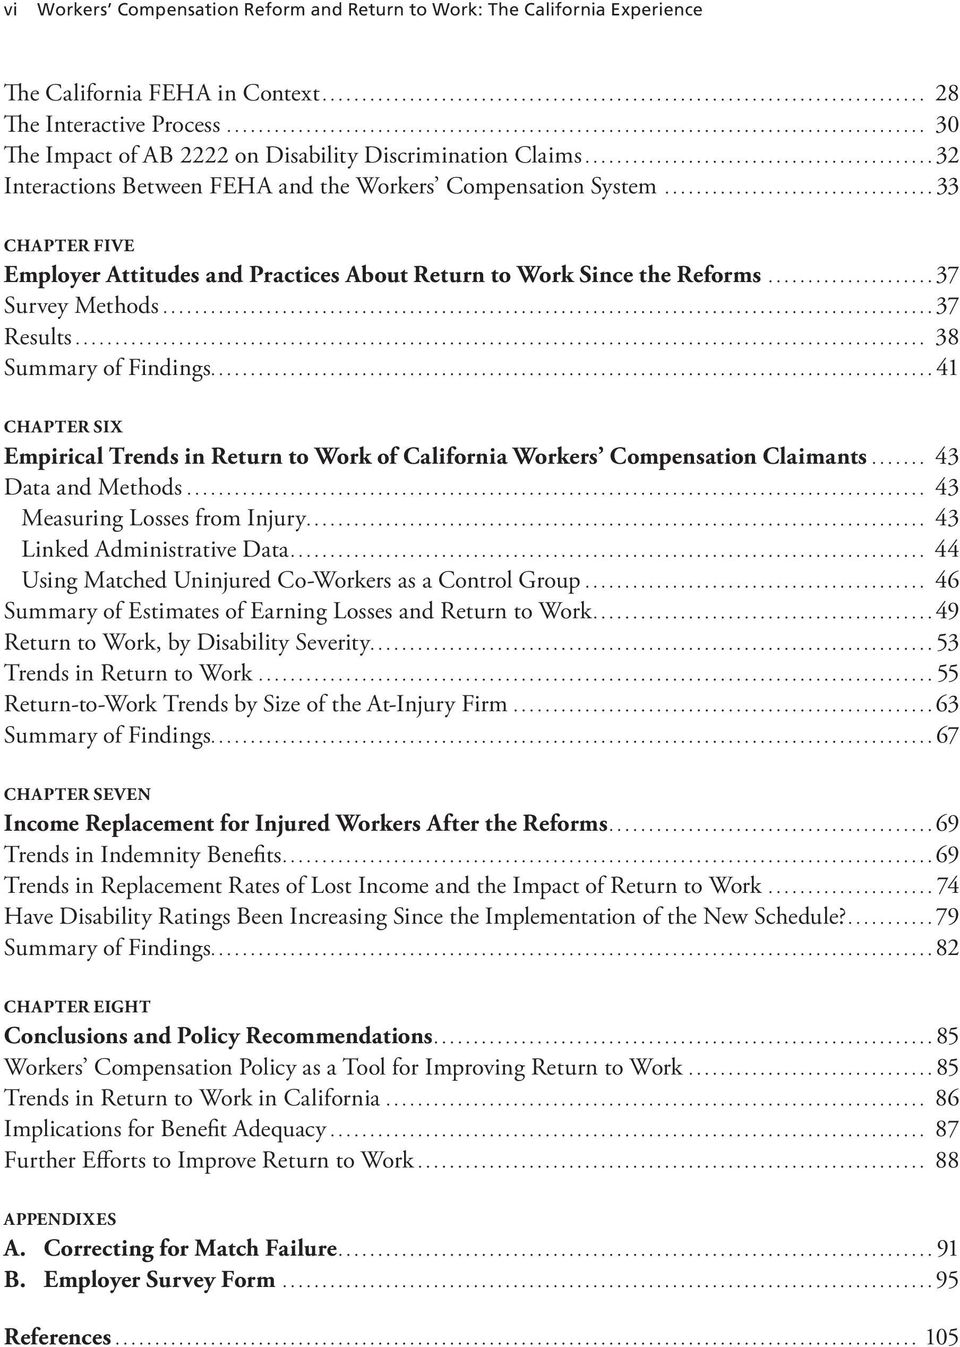 .. 38 Summary of Findings...41 CHAPTER SIX Empirical Trends in Return to Work of California Workers Compensation Claimants... 43 Data and Methods... 43 Measuring Losses from Injury.